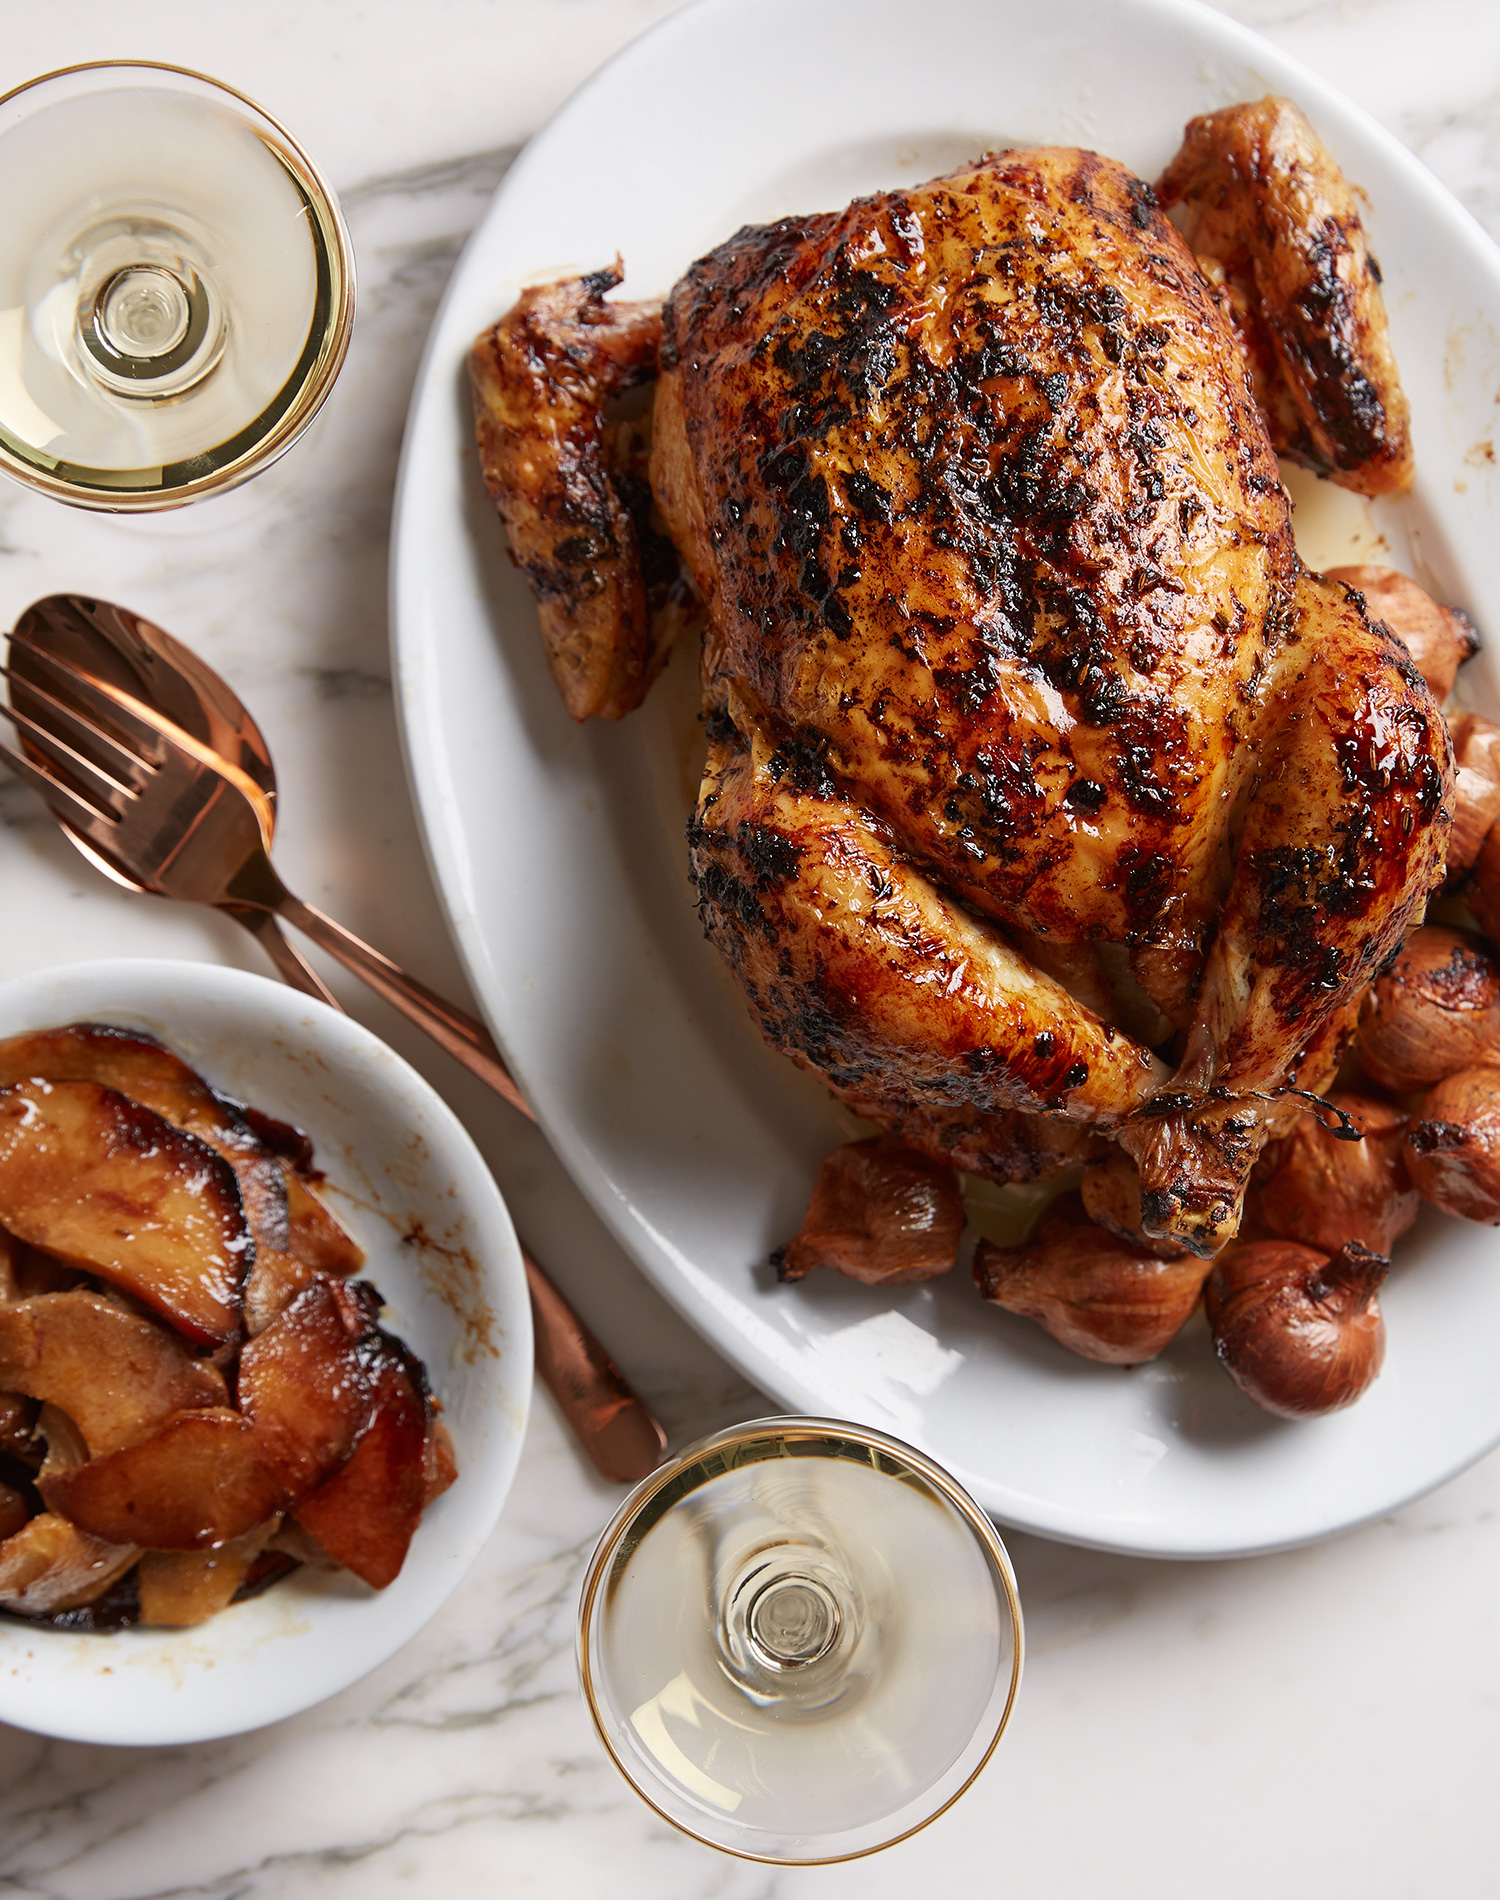 oven roasted chicken with caraway seed and quince